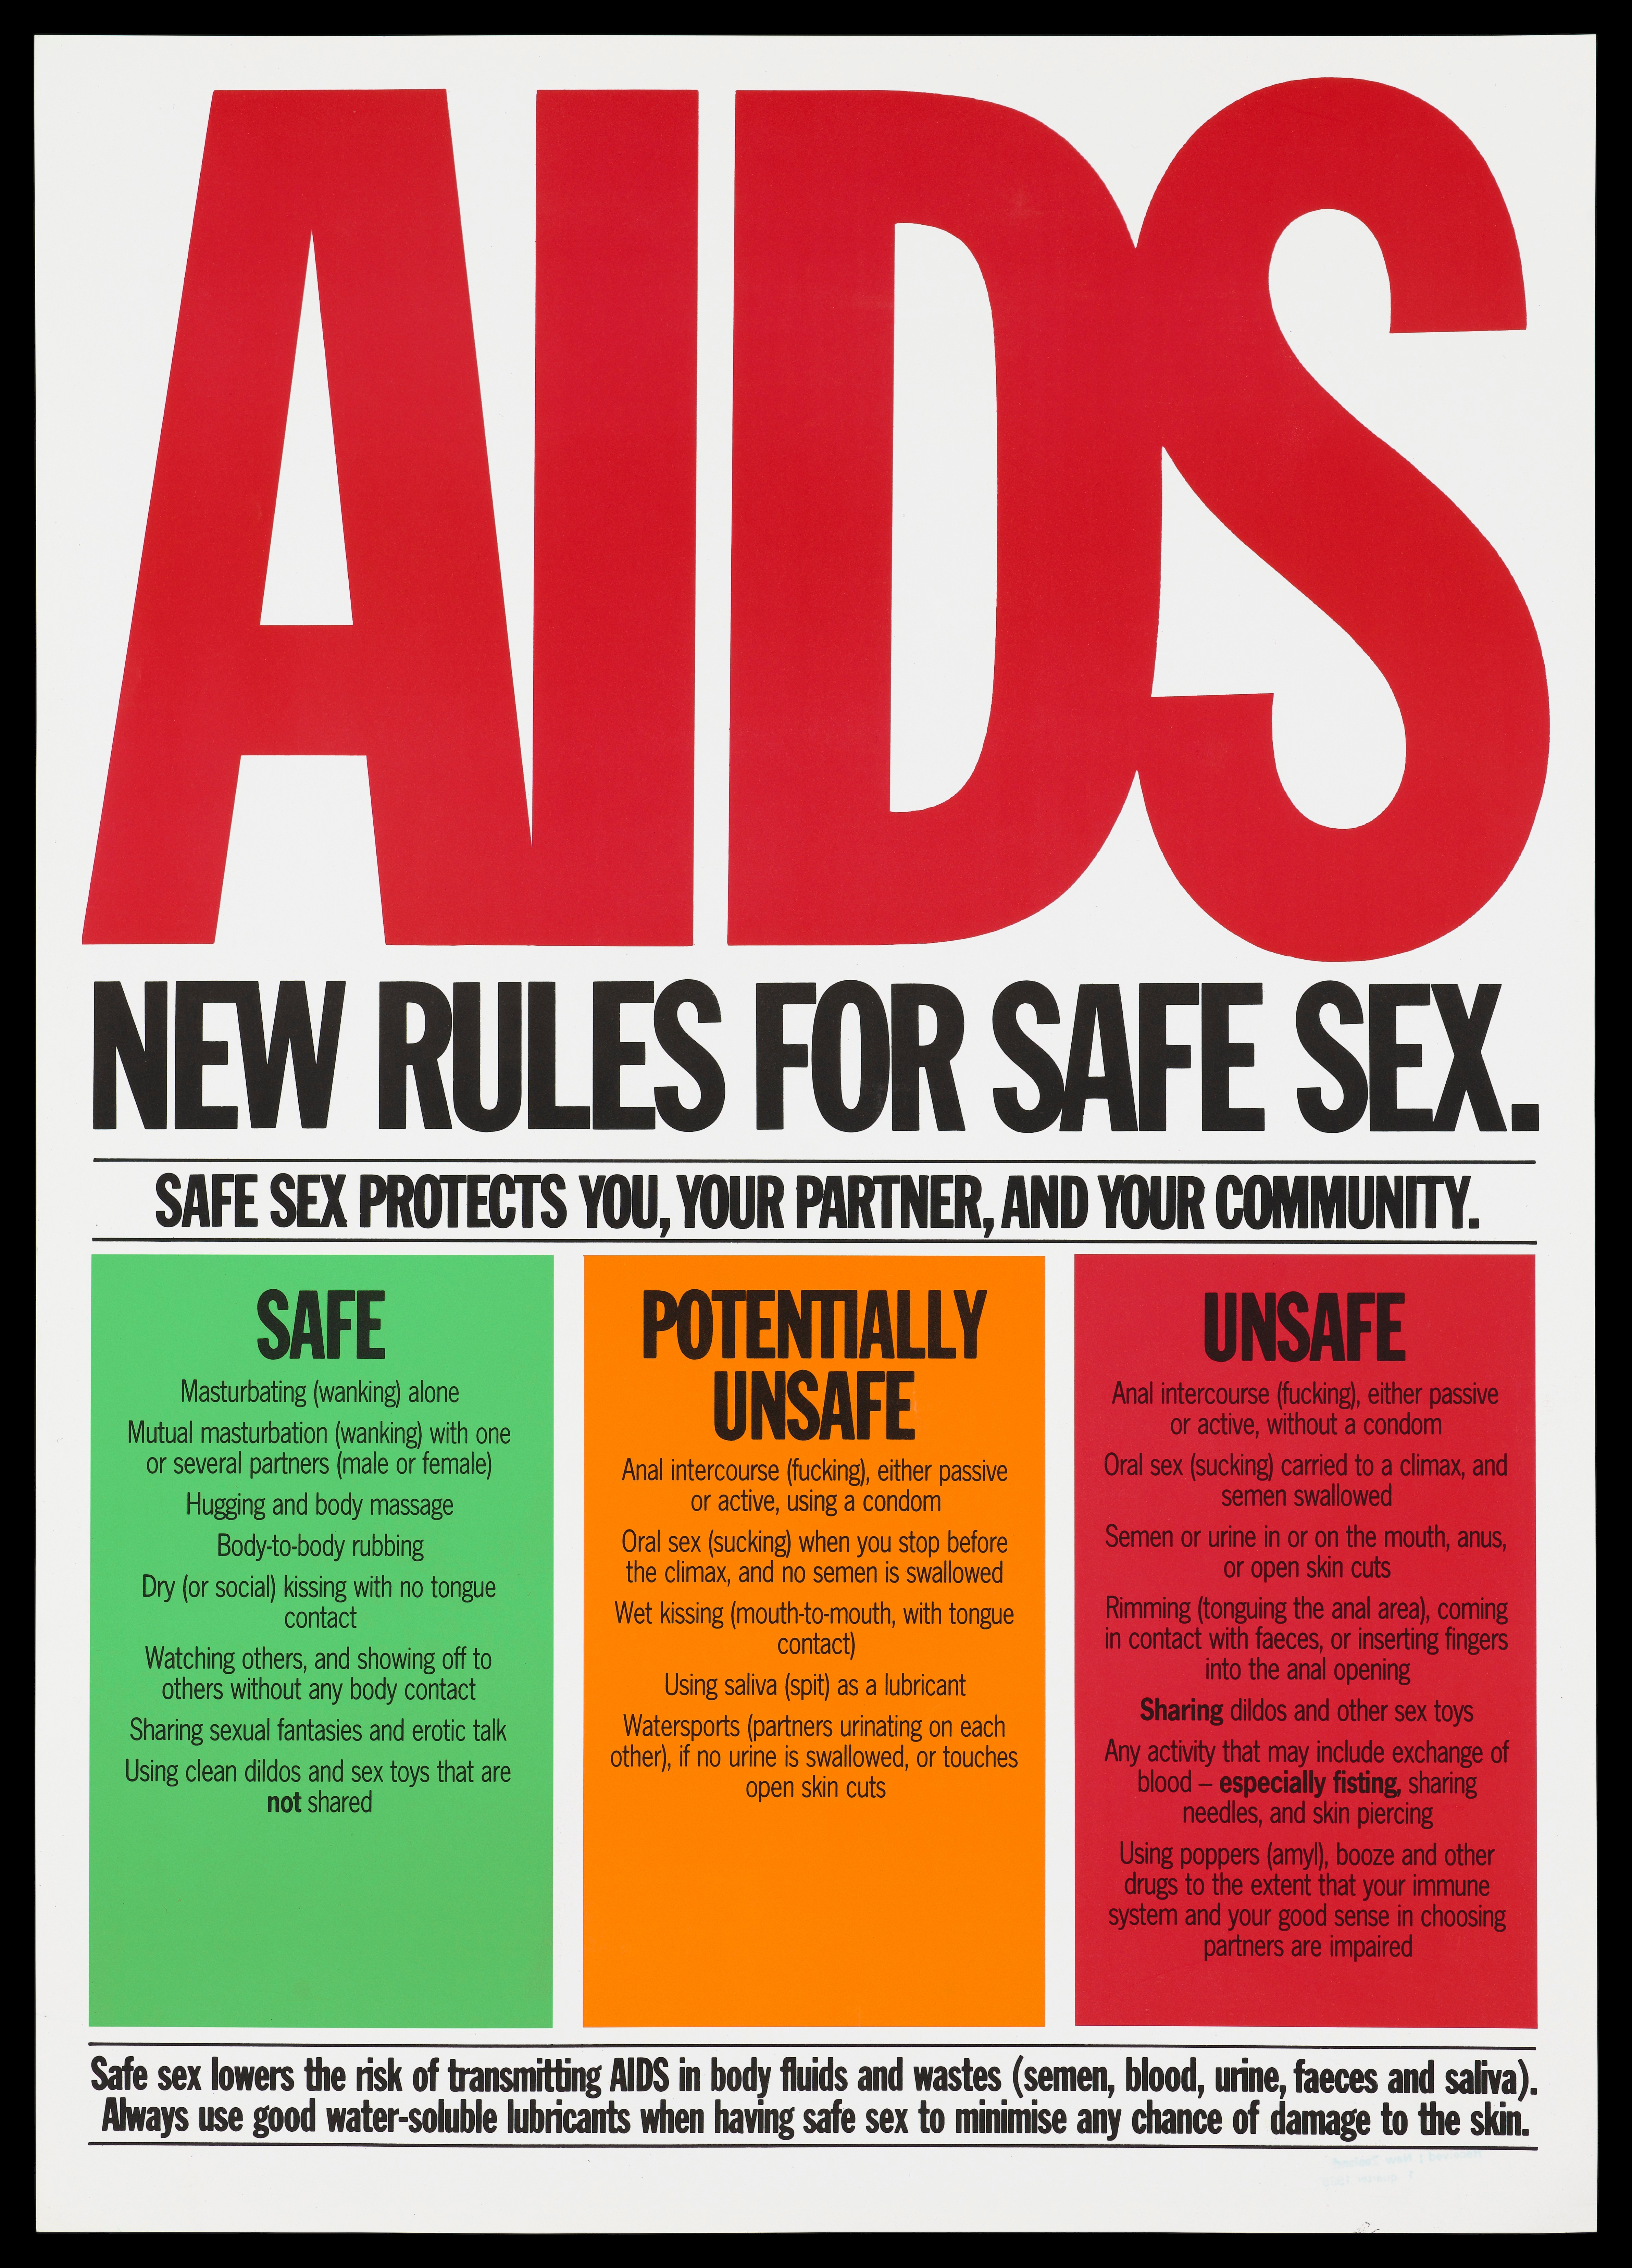 New Rules for Safe Sex